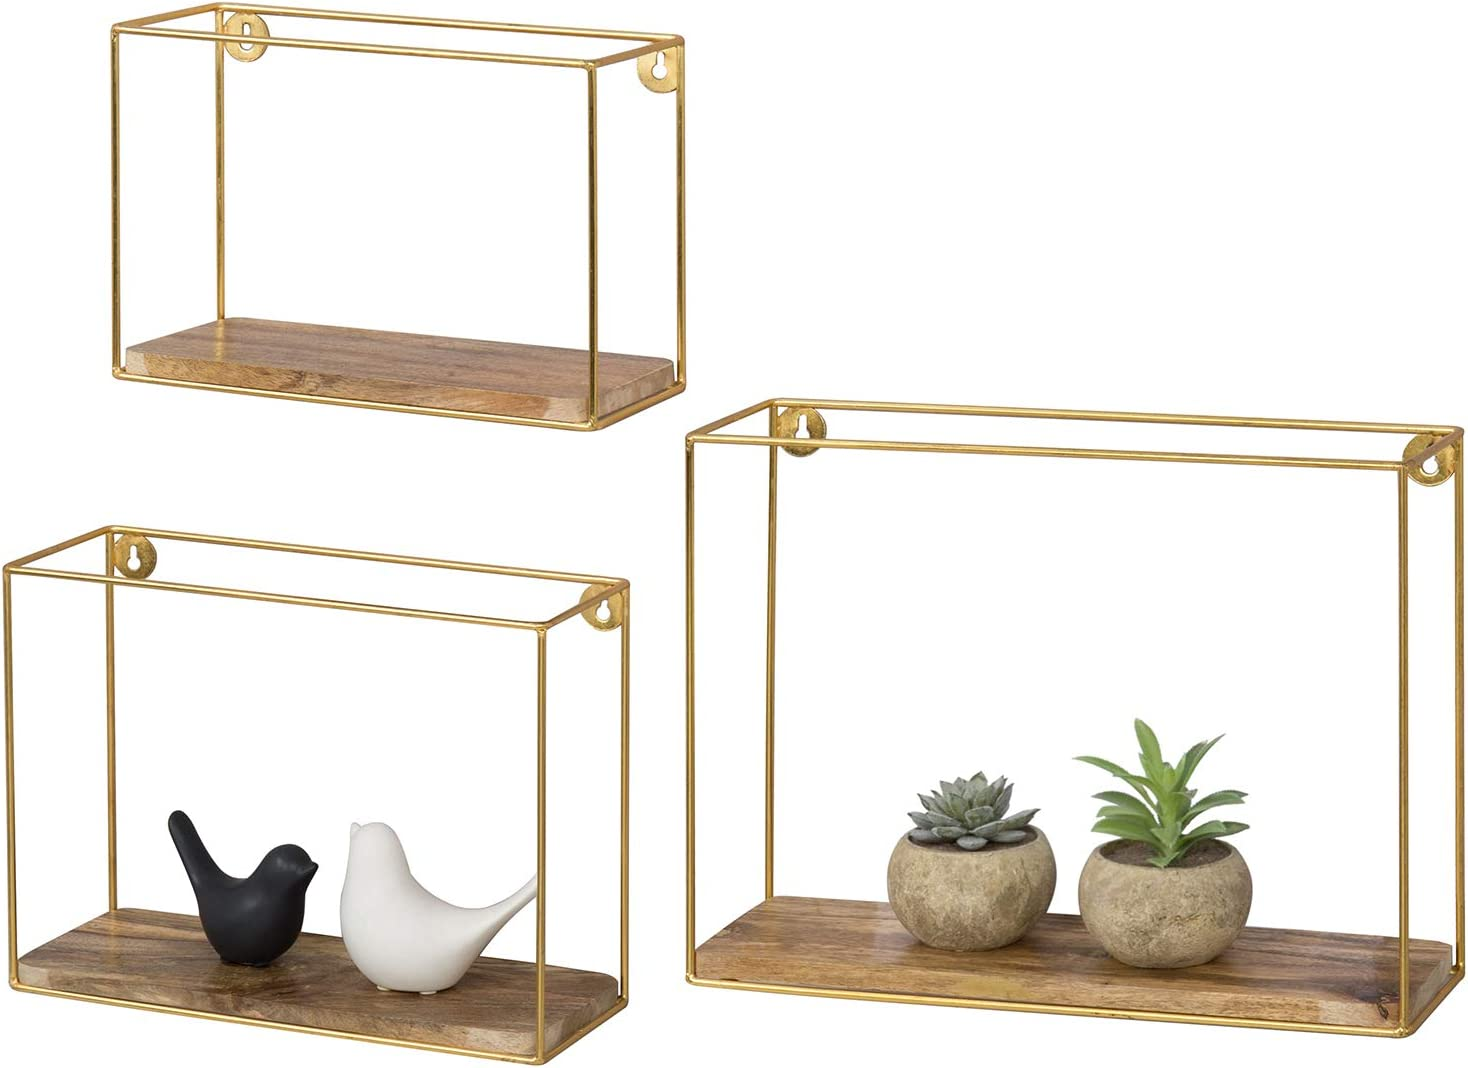 MyGift Mango Solid Wood & Brass-Plated Metal Wire Frame Wall Mounted Accent Shelves, Set of 3